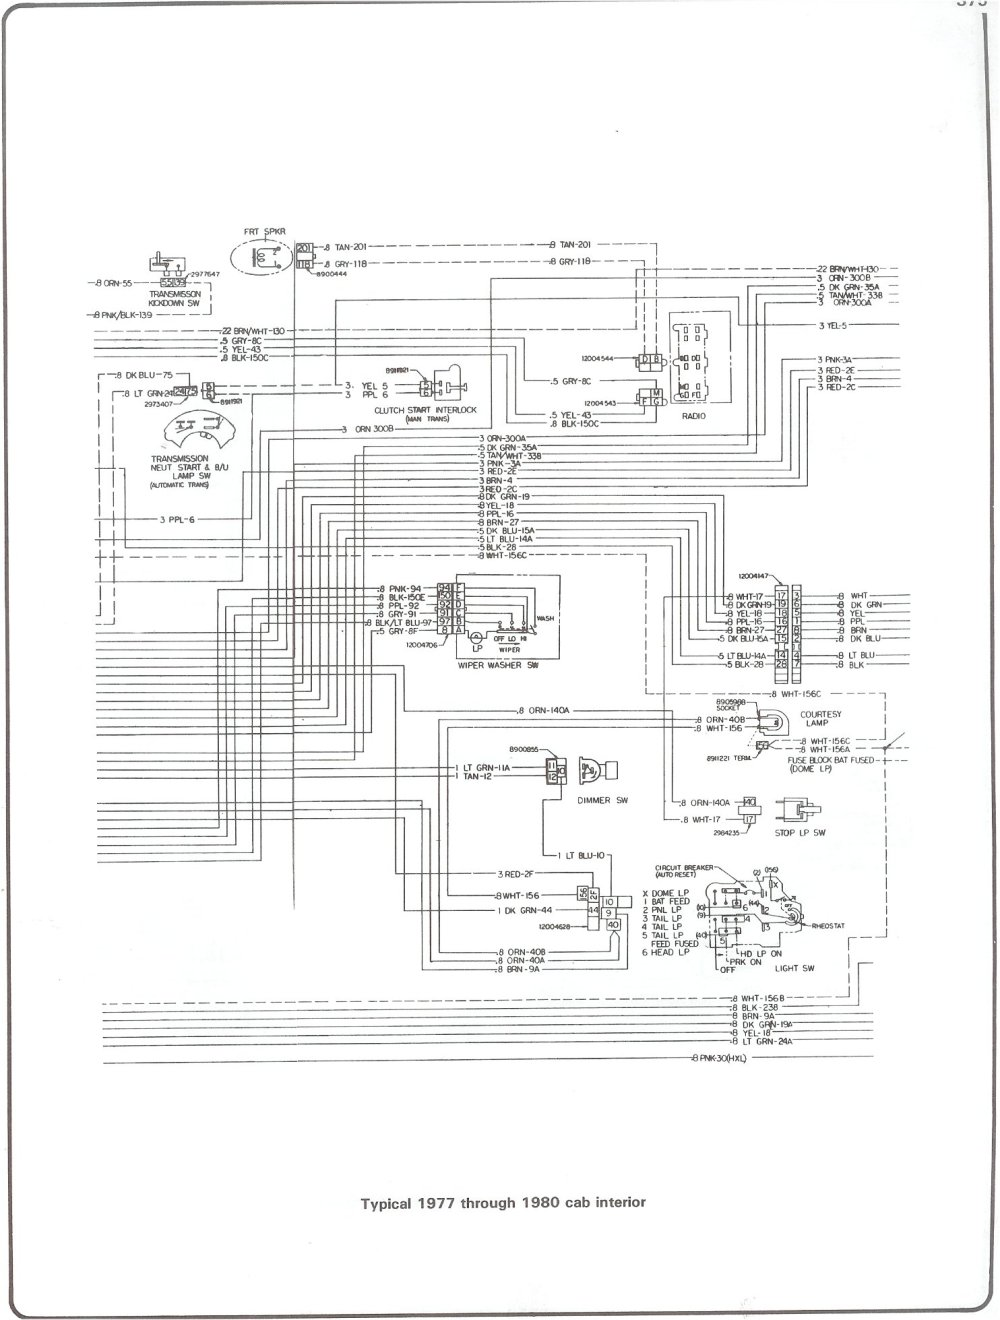 medium resolution of 1978 chevy truck fuse diagram wiring diagram fascinating 1976 chevy truck headlight switch wiring diagram 1976 chevy truck wiring diagram